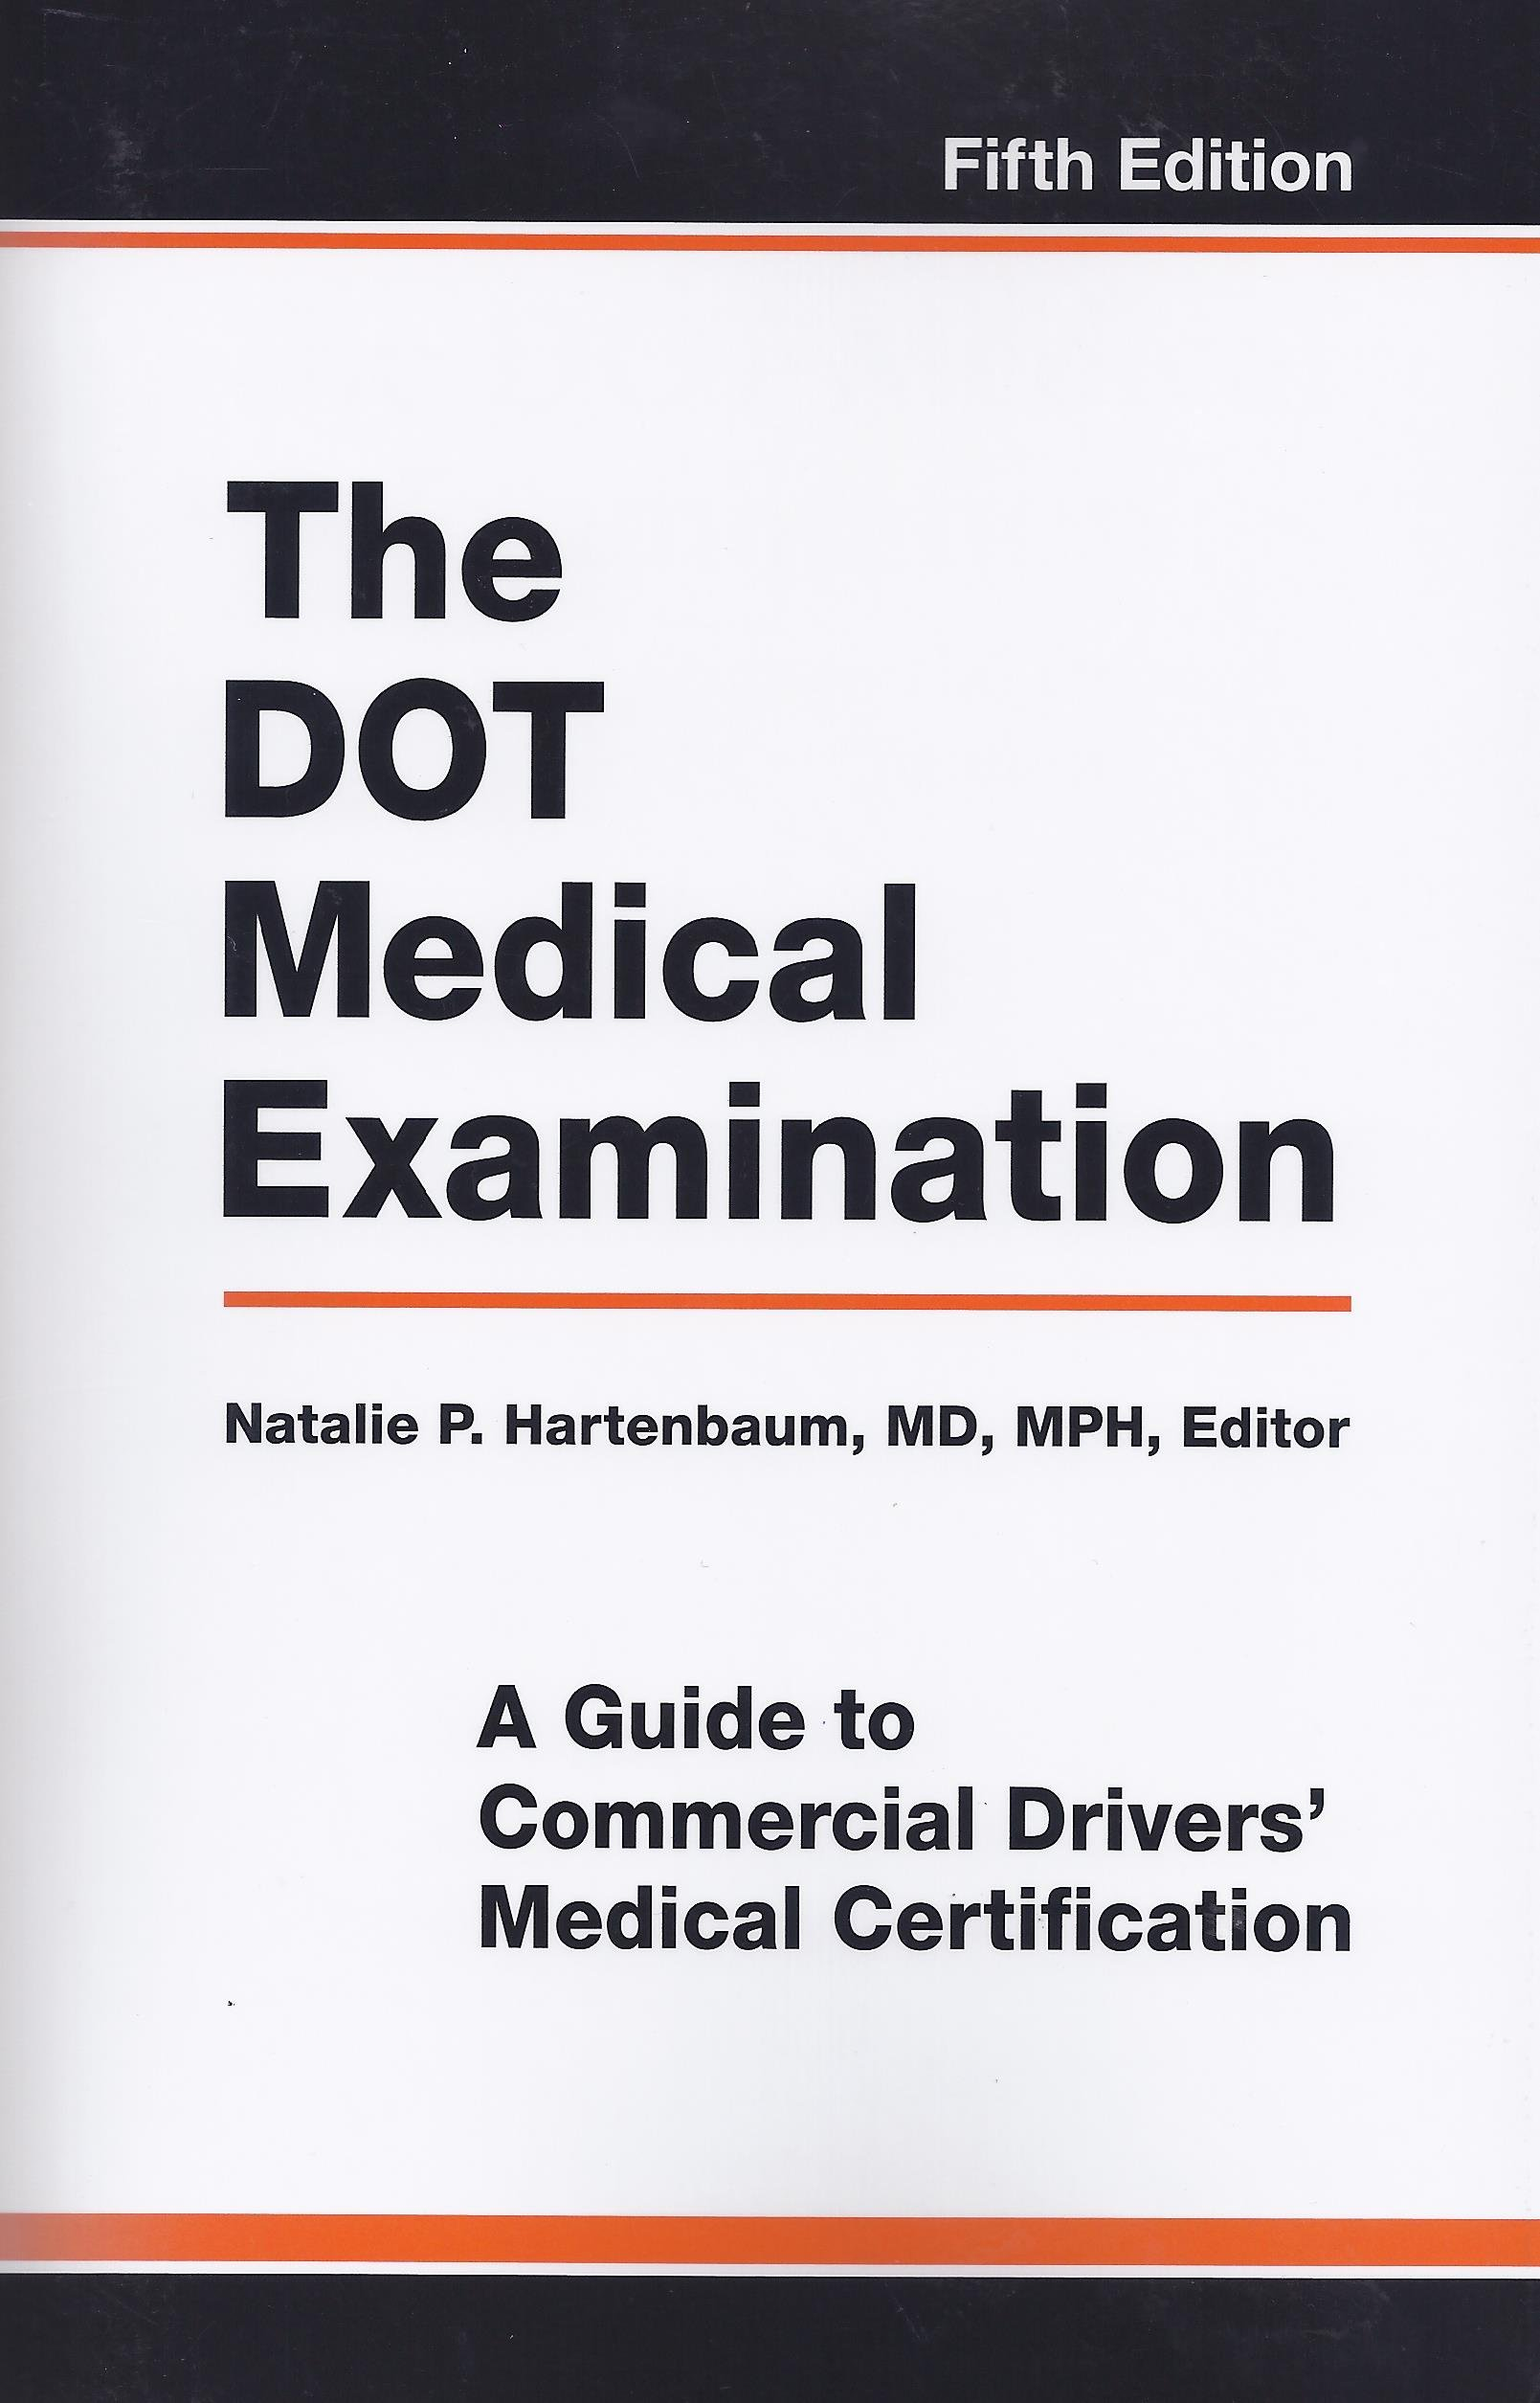 The dot medical examination a guide to commercial drivers the dot medical examination a guide to commercial drivers medical certification natalie p md hartenbaum 9781883595531 books amazon xflitez Choice Image